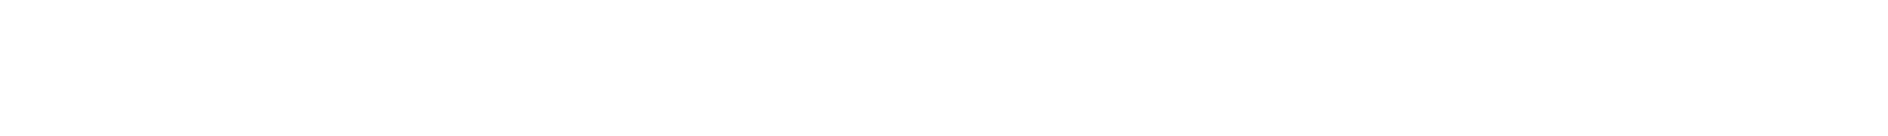 Willabrand Australia Wordmark